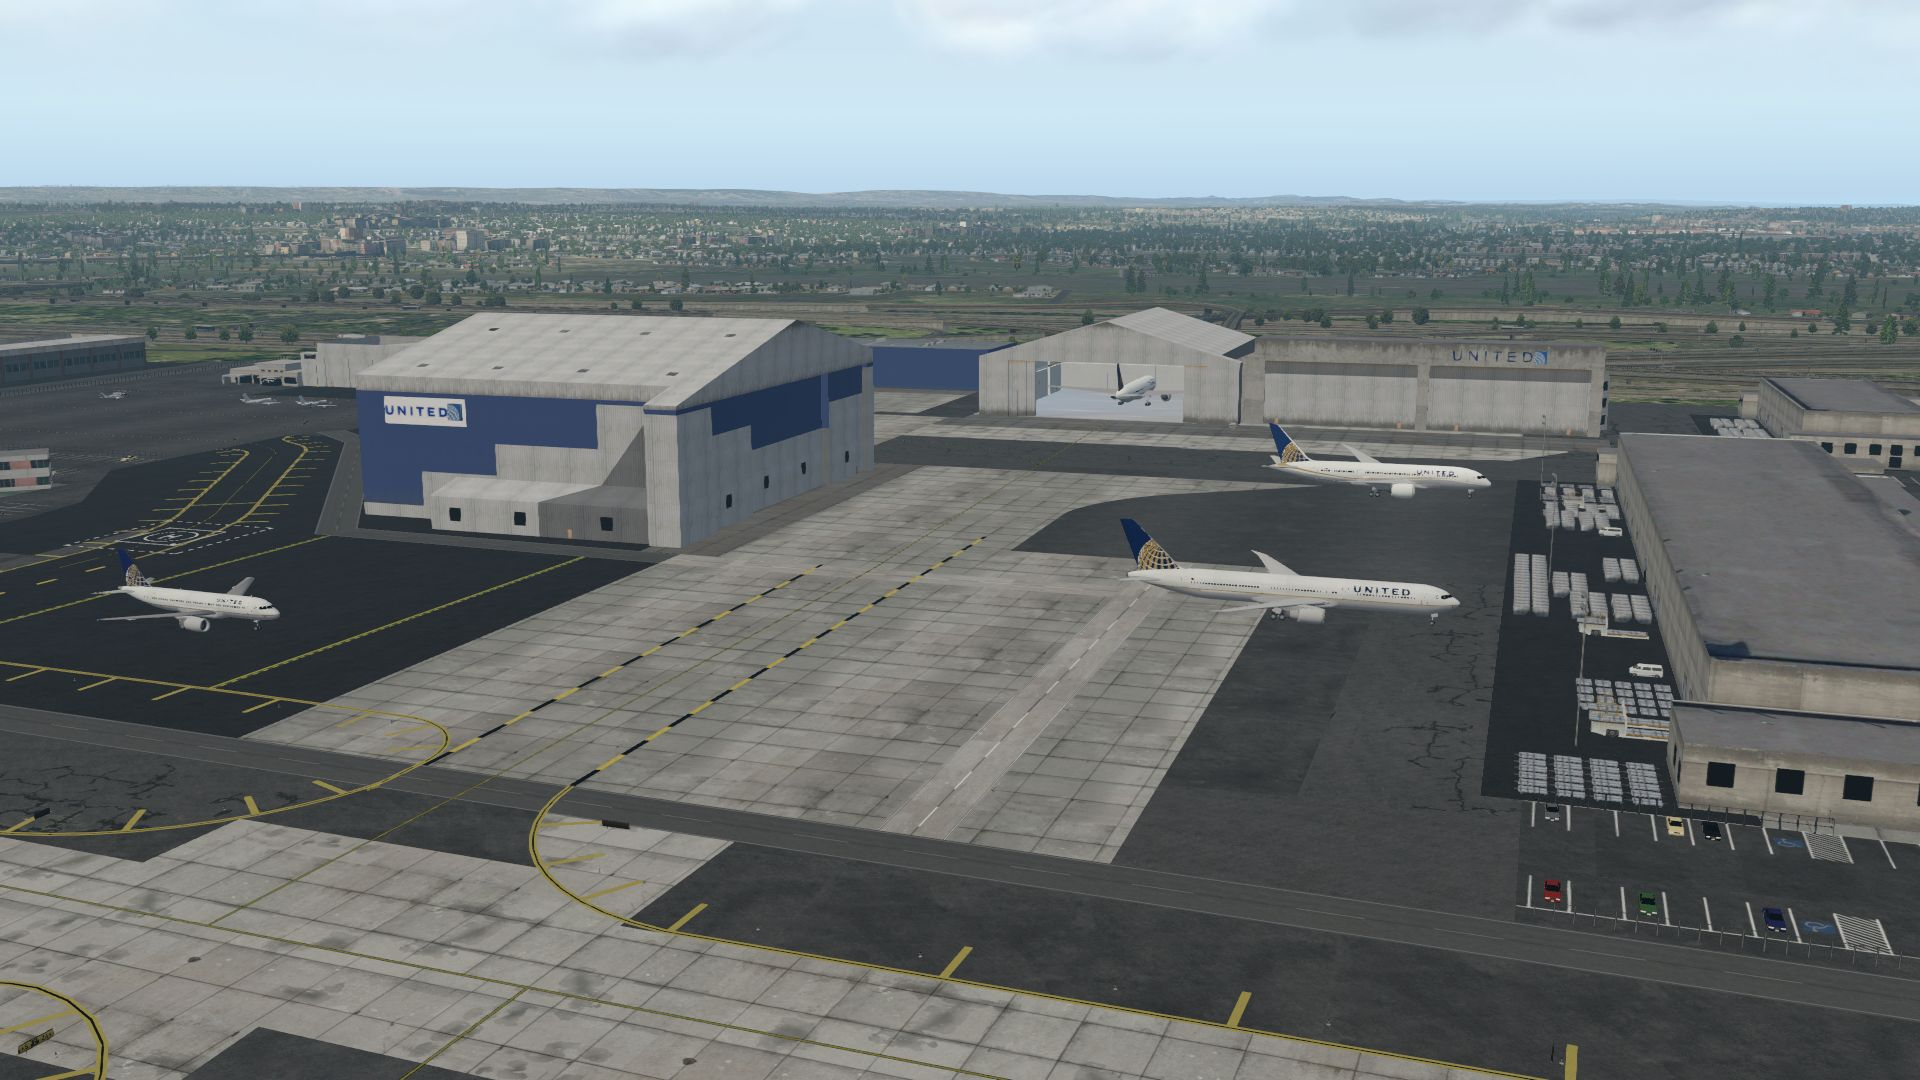 FINAL APPROACH SIMULATIONS - 美国-纽瓦克自由国际机场 KEWR X-PLANE 10/11